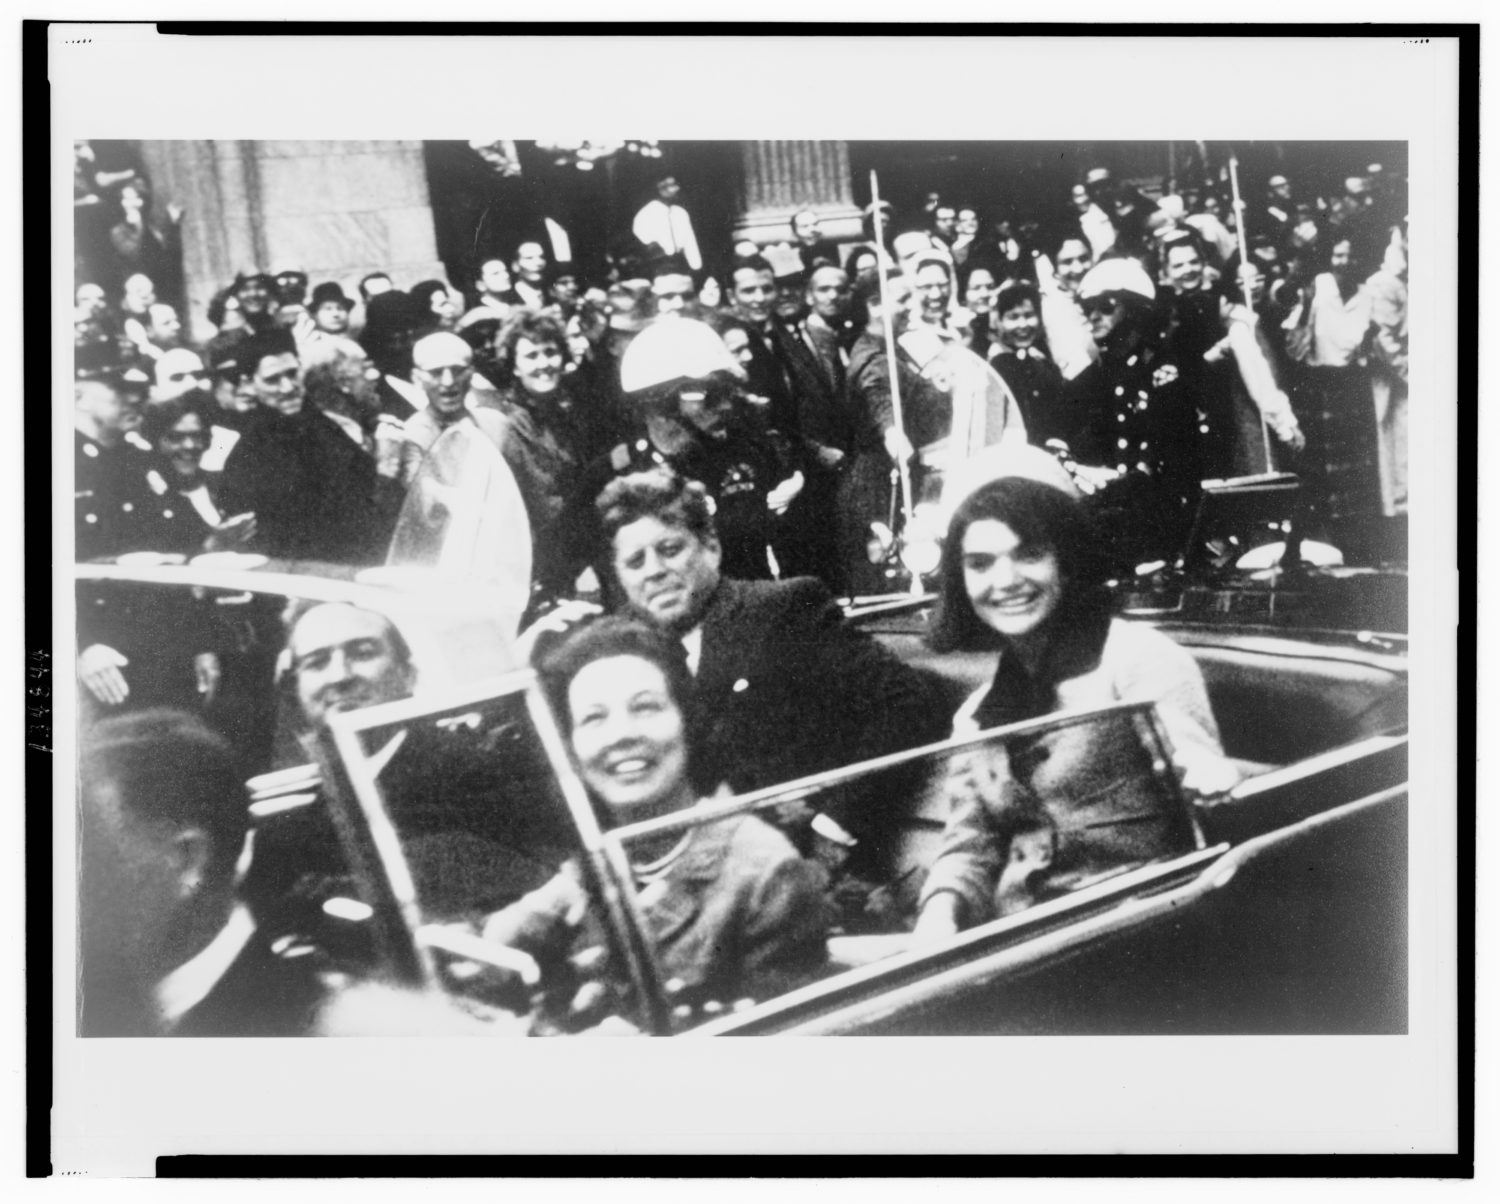 Former U.S. President John F. Kennedy (C), first lady Jacqueline Kennedy (R) and Texas Governor John Connally (L) and his wife are pictured riding in the presidential motorcade moments before Kennedy was shot in Dallas,Texas, in this handout image taken on November 22, 1963. REUTERS/Victor Hugo King/Library of Congress/Handout